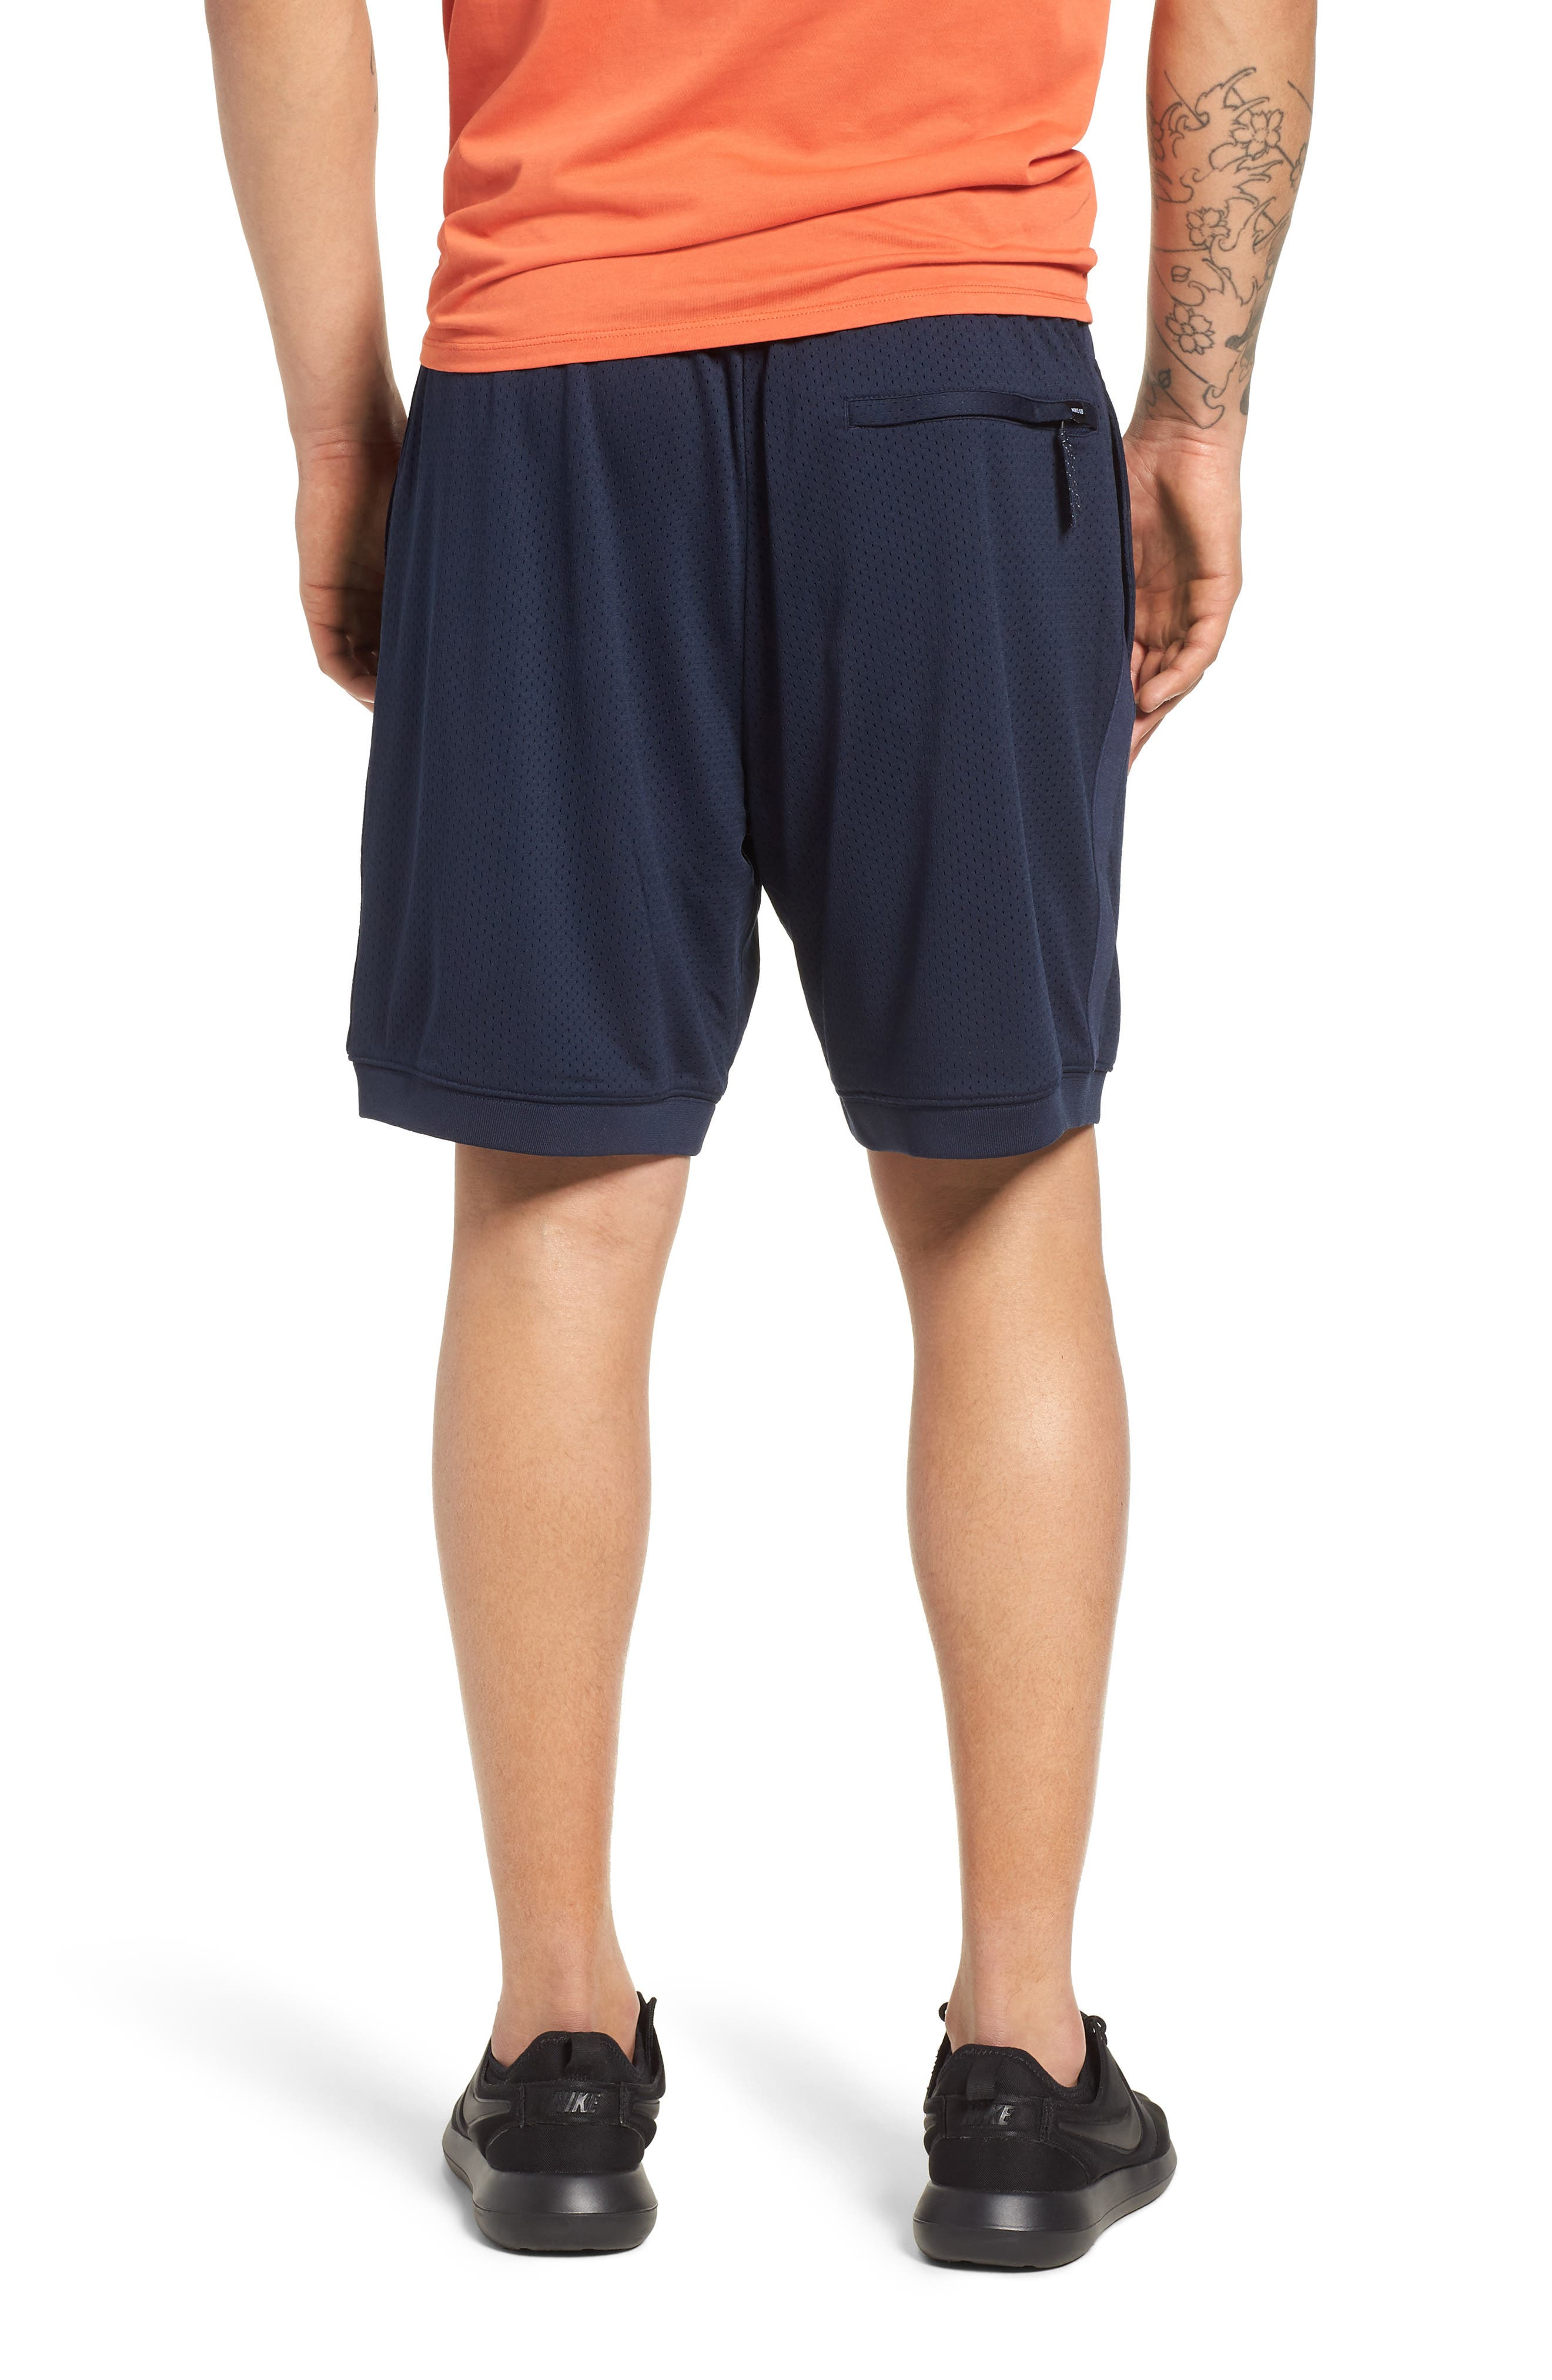 SB Dry Heritage Court Shorts,                             Alternate thumbnail 2, color,                             OBSIDIAN/ WHITE